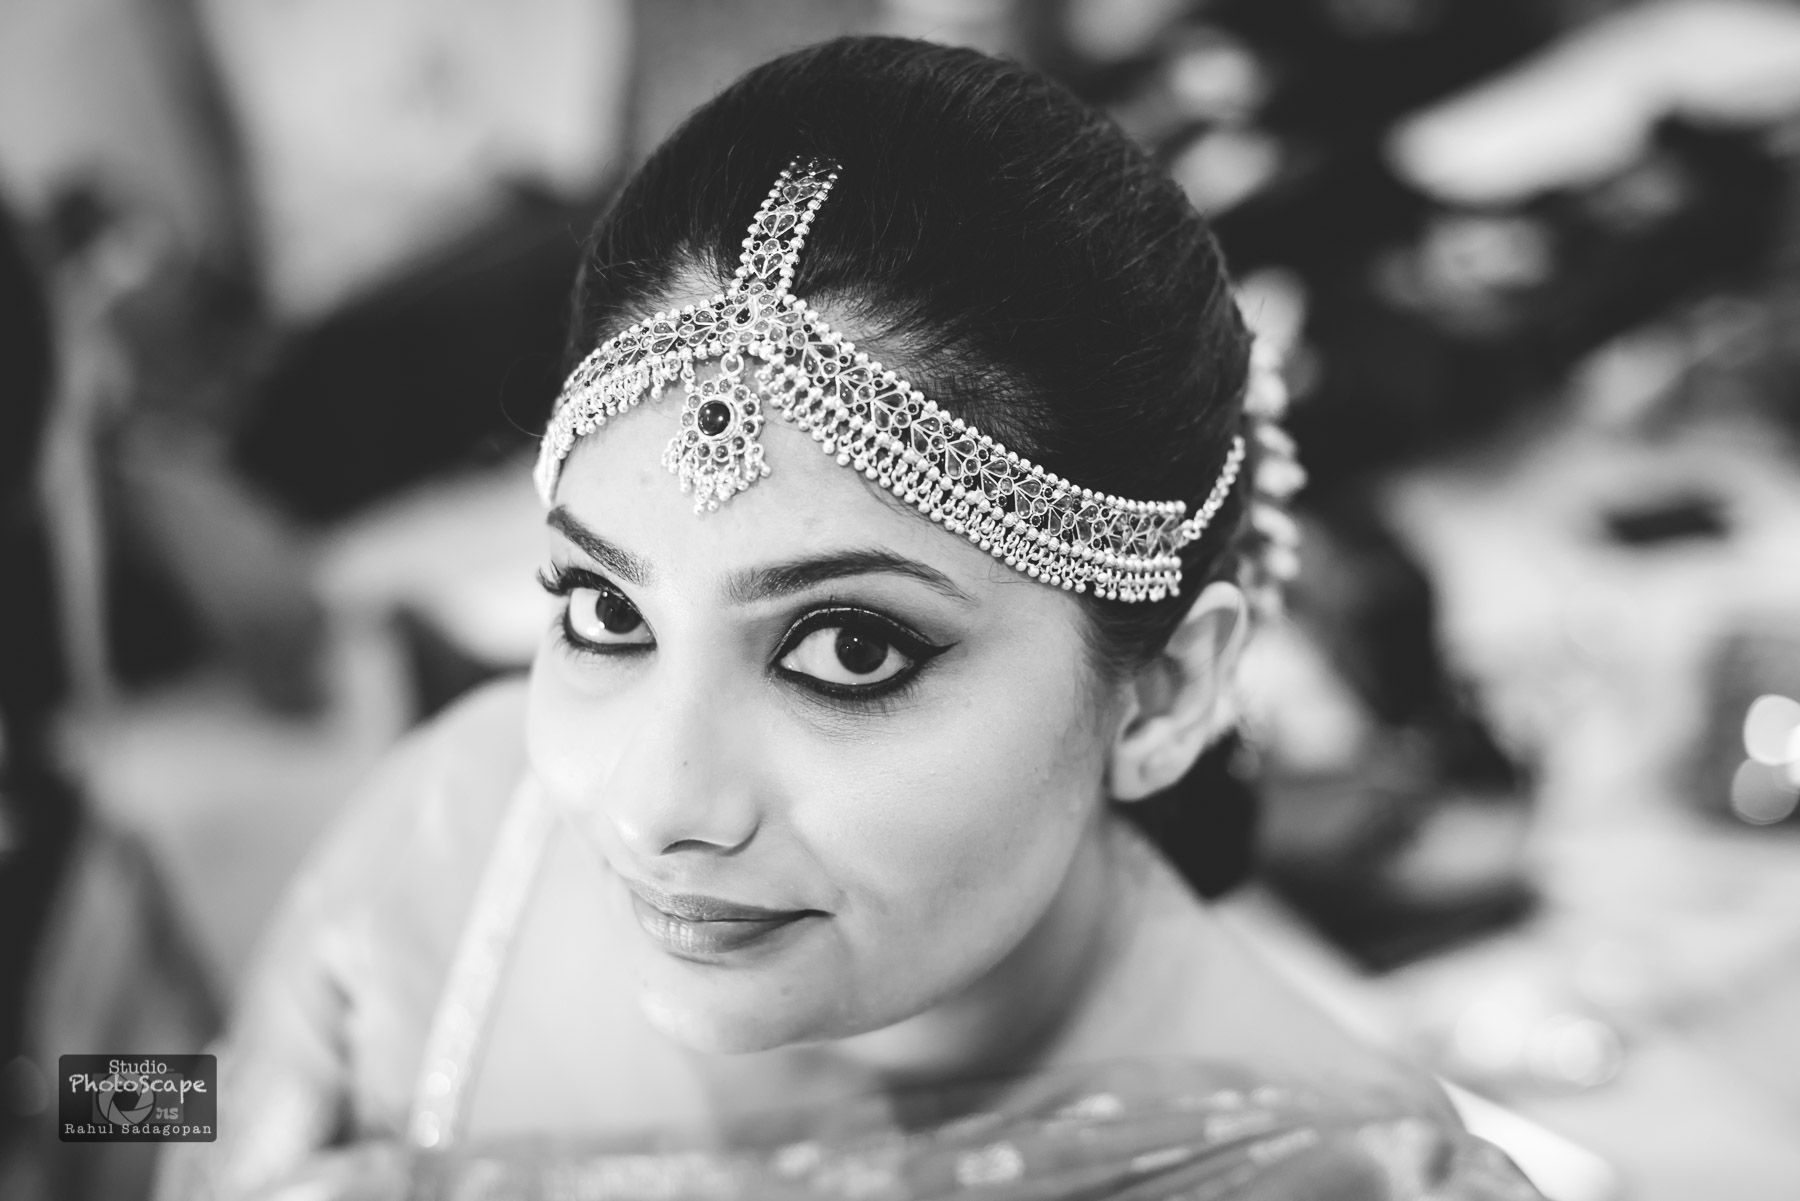 south indian bride, south indian bridal makeup, tamil bride, south indian wedding blog